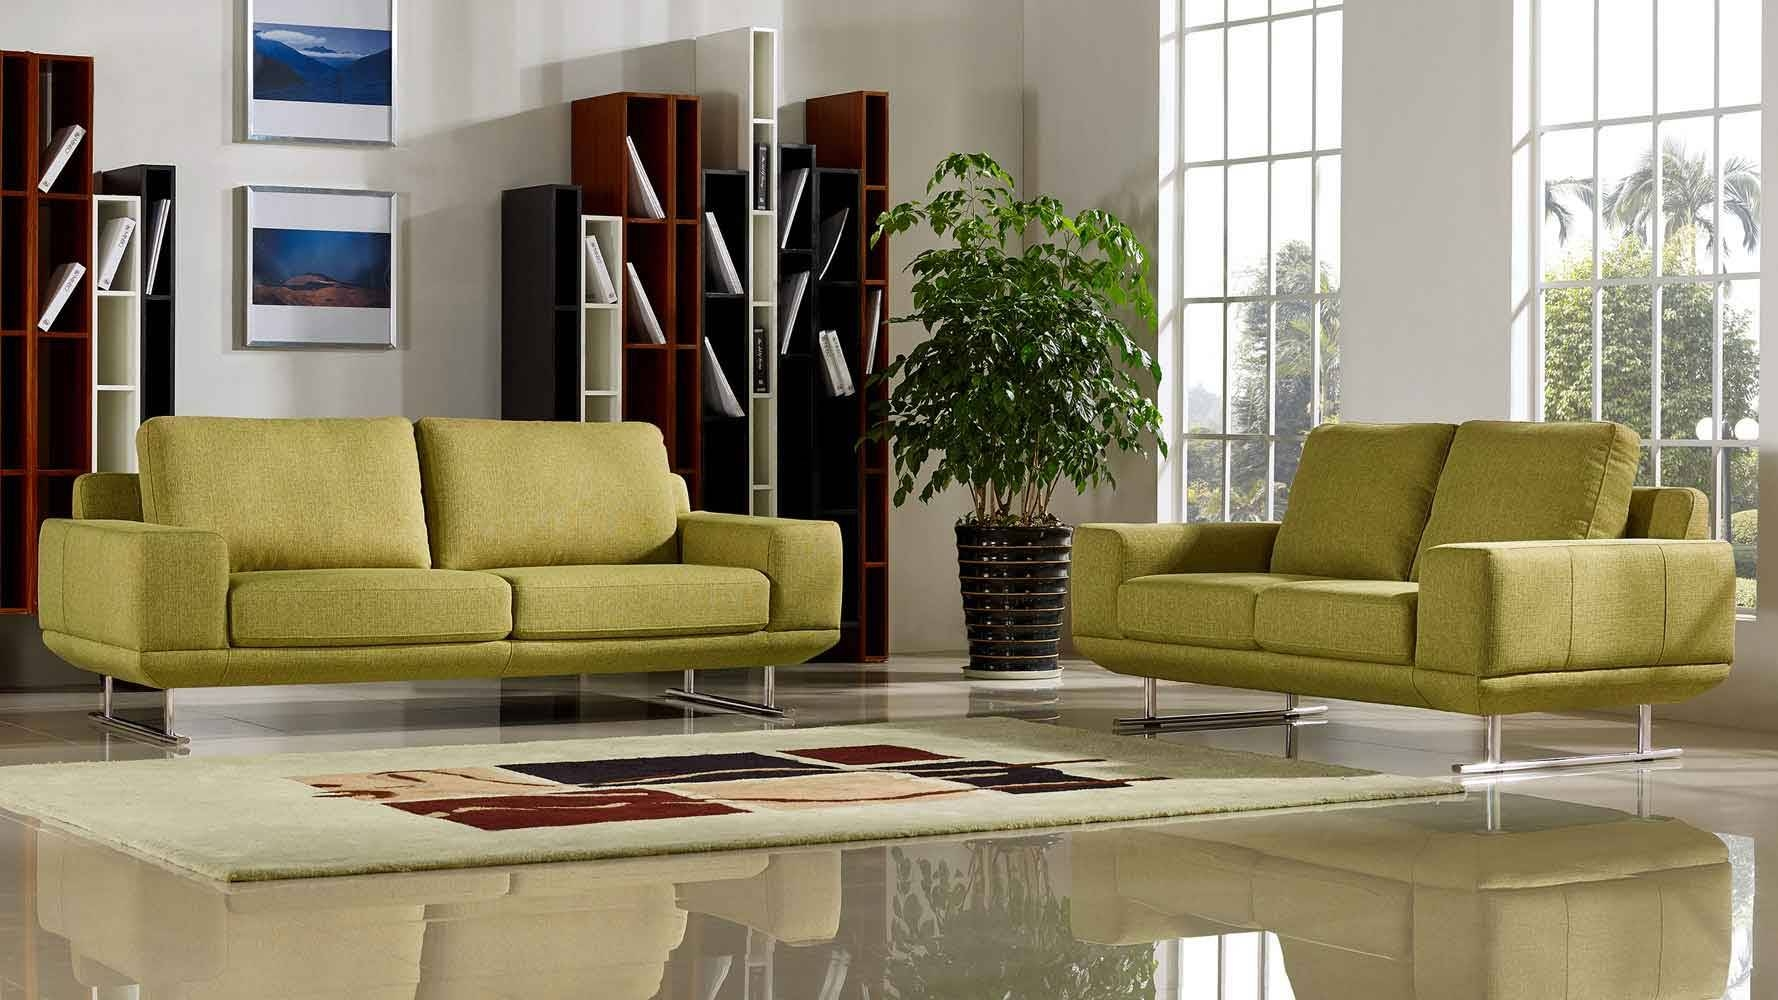 Modern Chartreuse Fabric Della Sofa And Loveseat Set | Zuri Furniture with Chartreuse Sofas (Image 14 of 15)